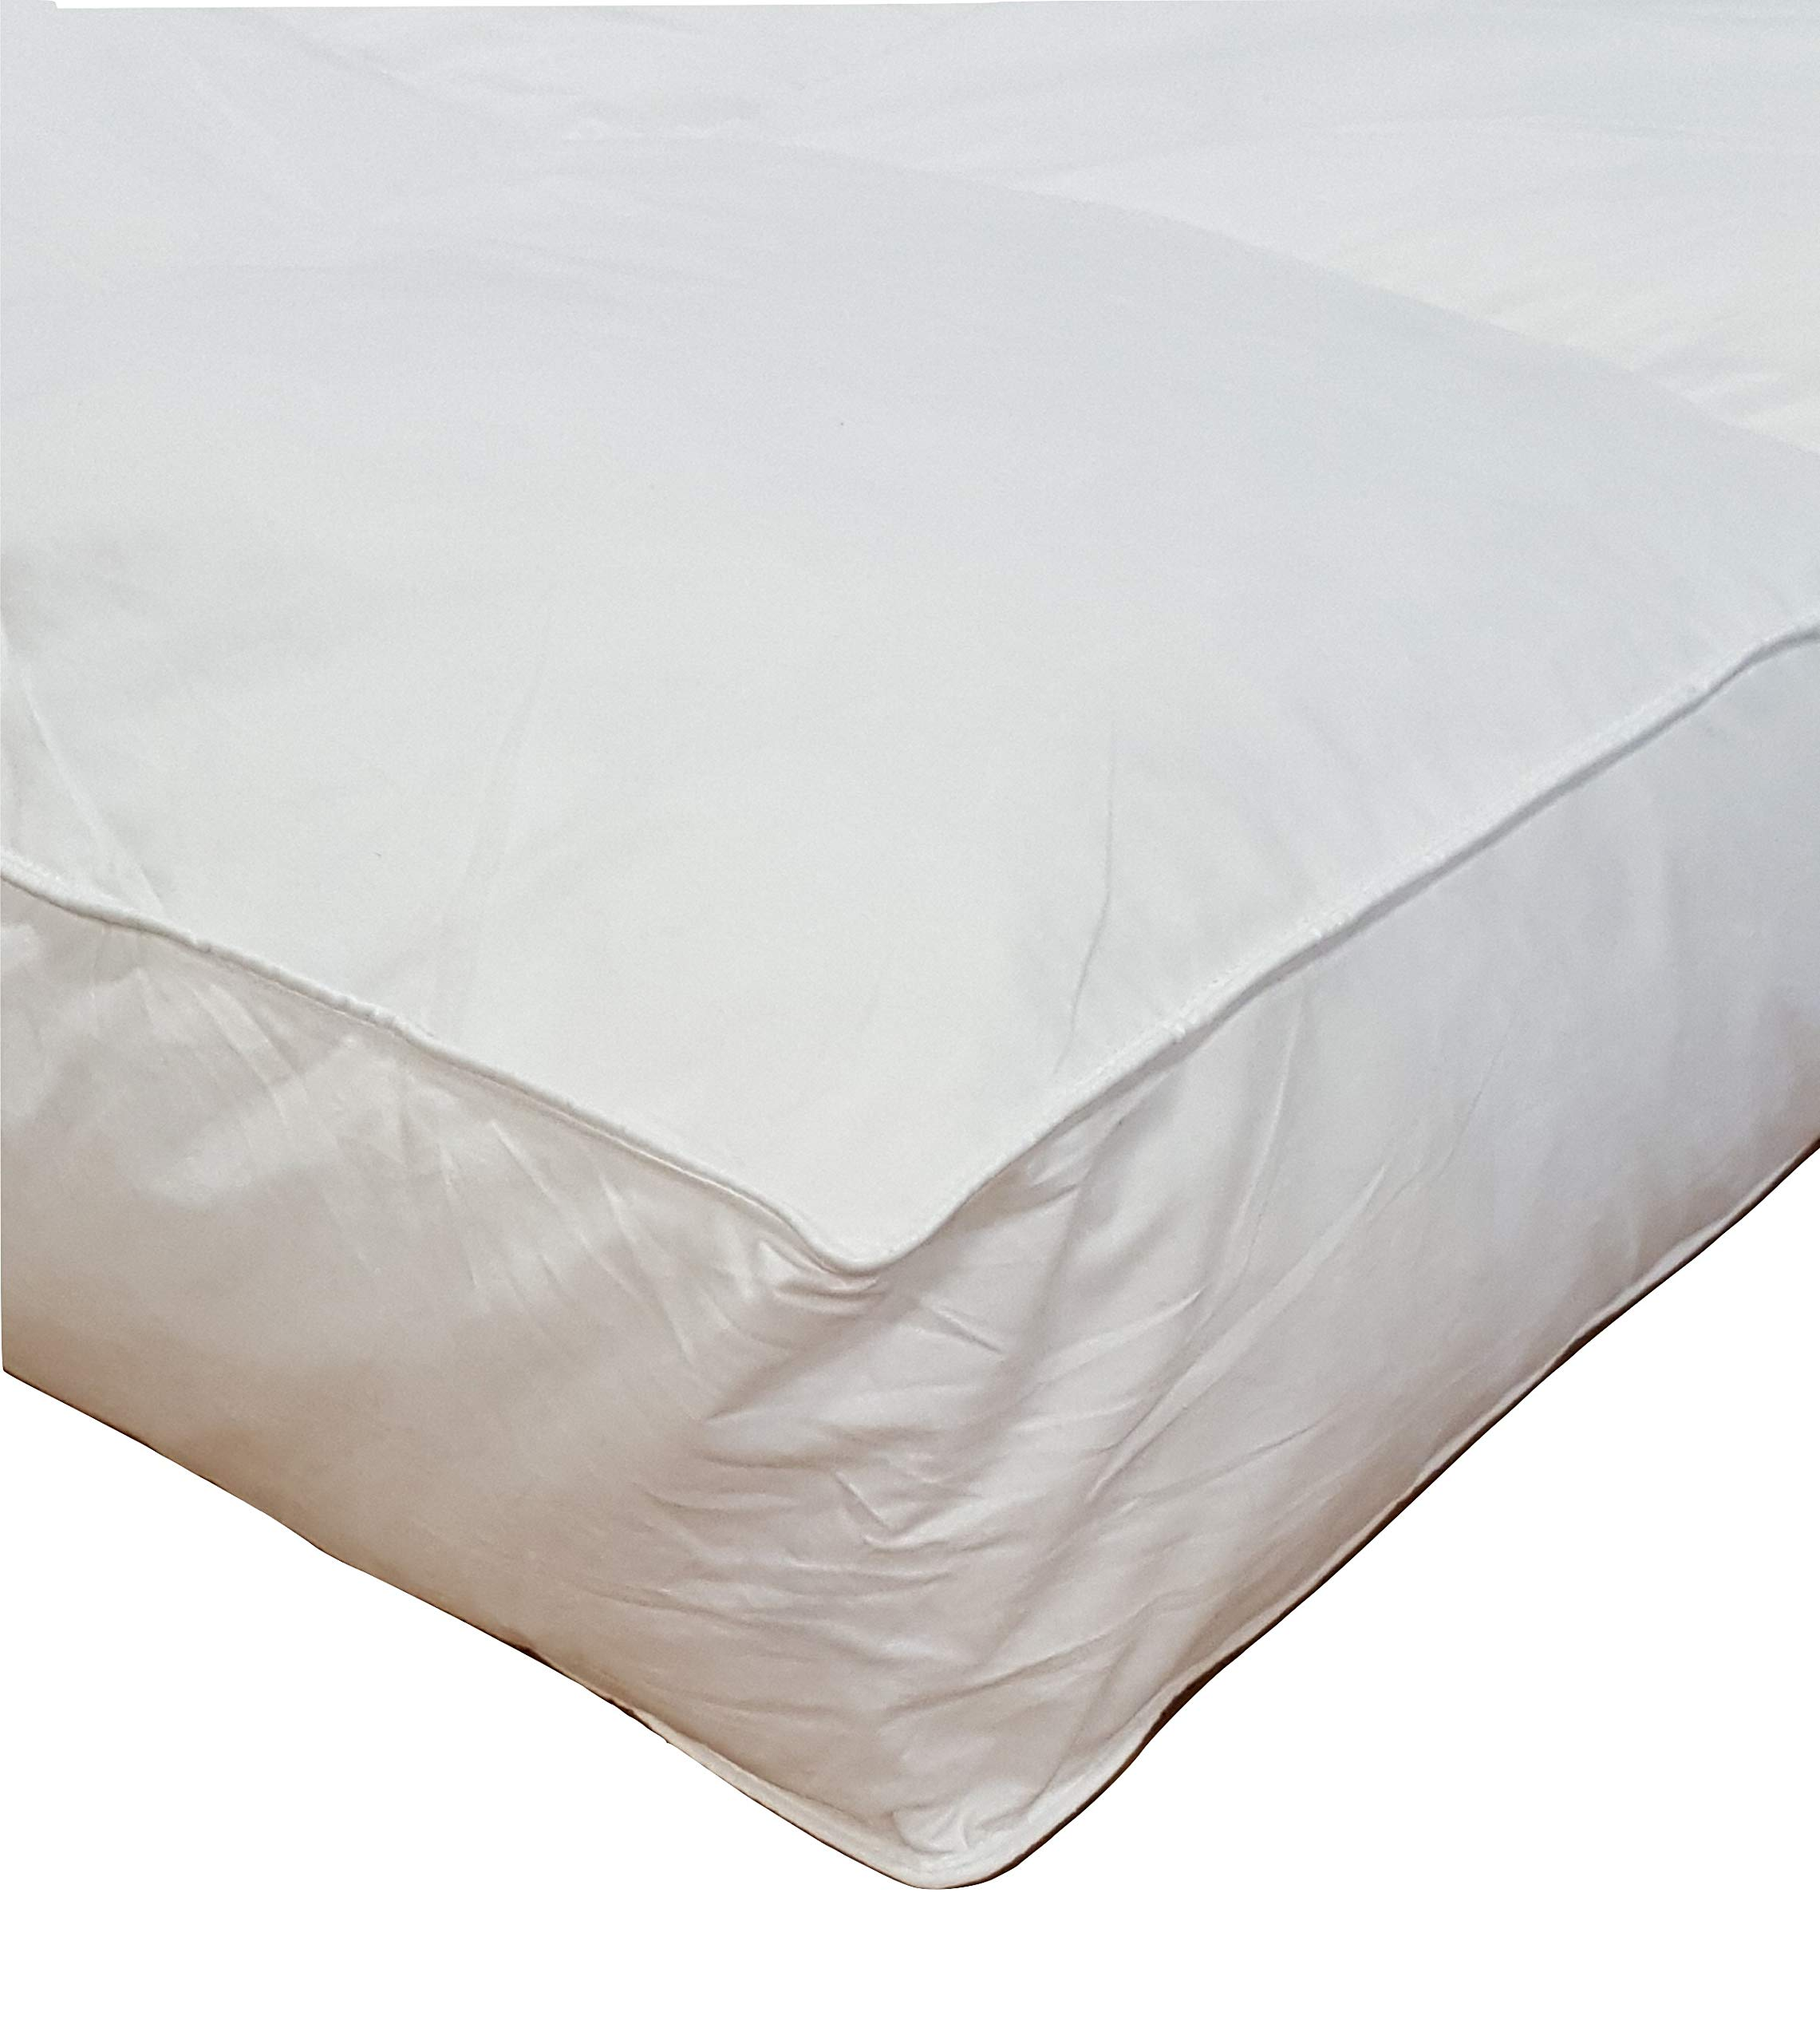 Millsave Premium Hotel Quality 5'' Queen (60'' x 80'') White Goose Down & Feather Mattress Topper Featherbed/Feather Bed, Baffled with High 21 lb. Fill Weight by Millsave